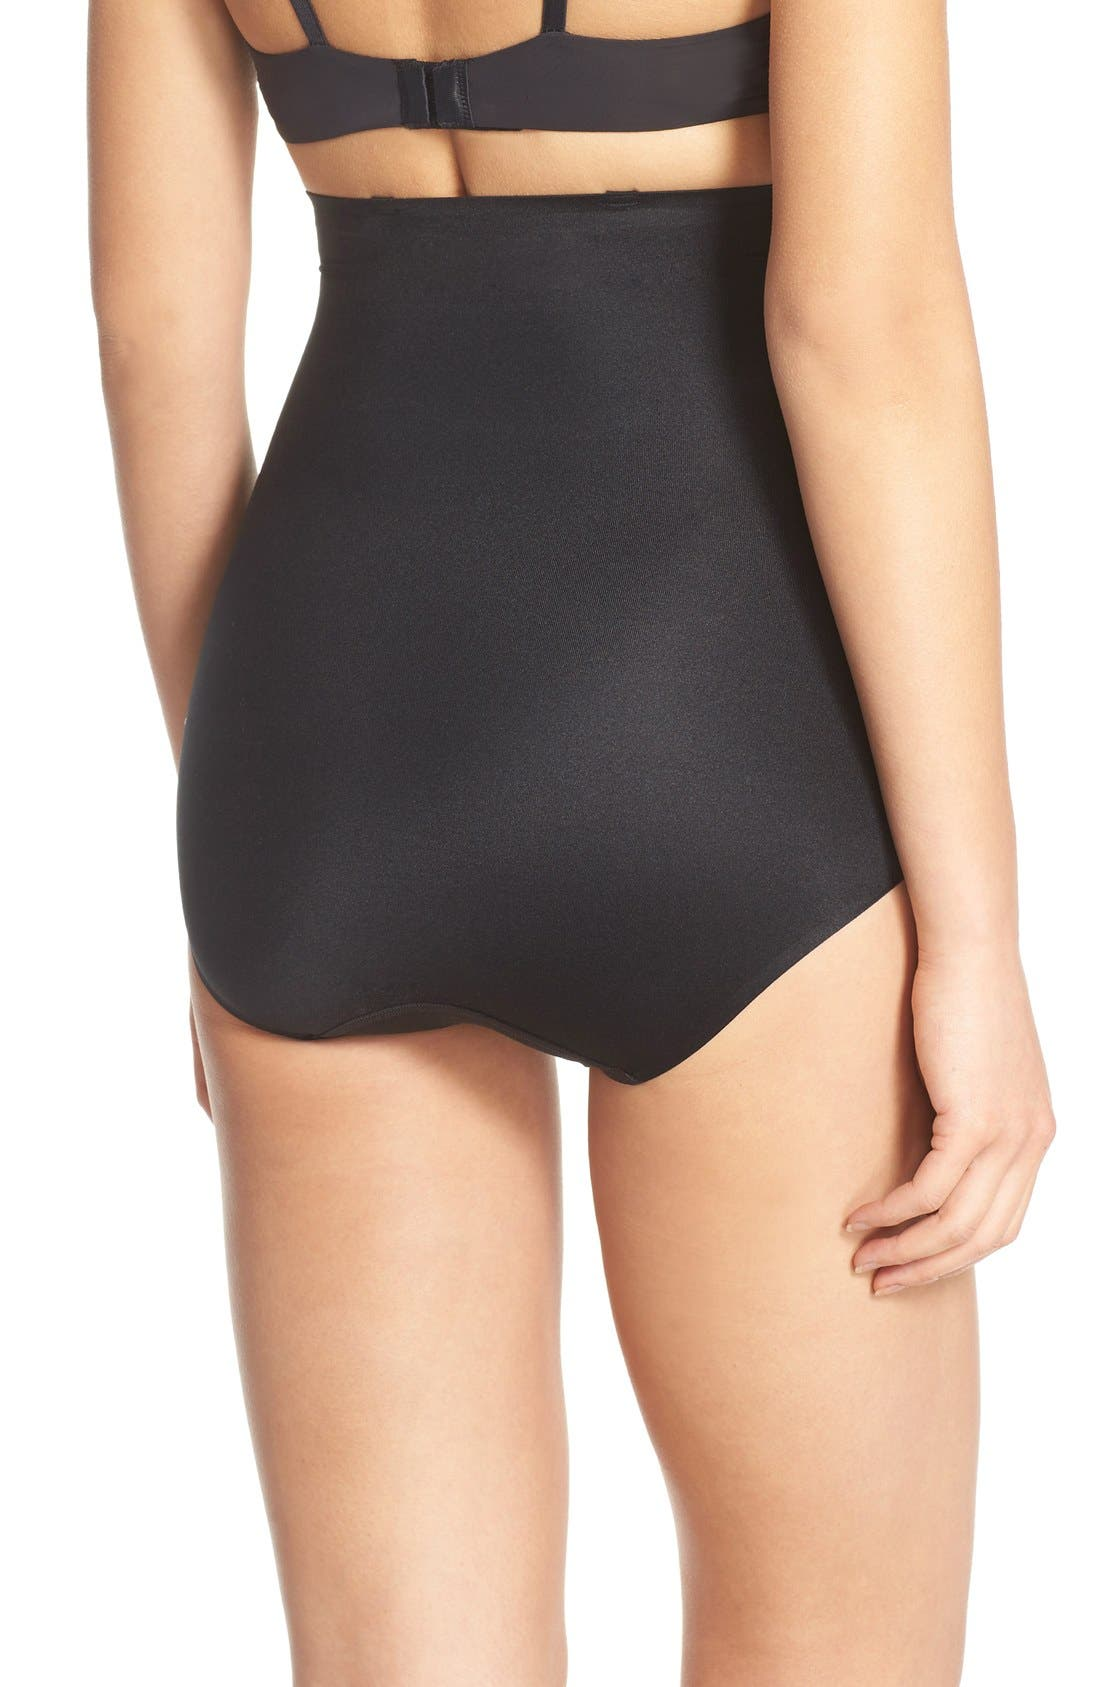 Alternate Image 2  - Wacoal 'Sensational Smoothing' High Waist Shaping Briefs